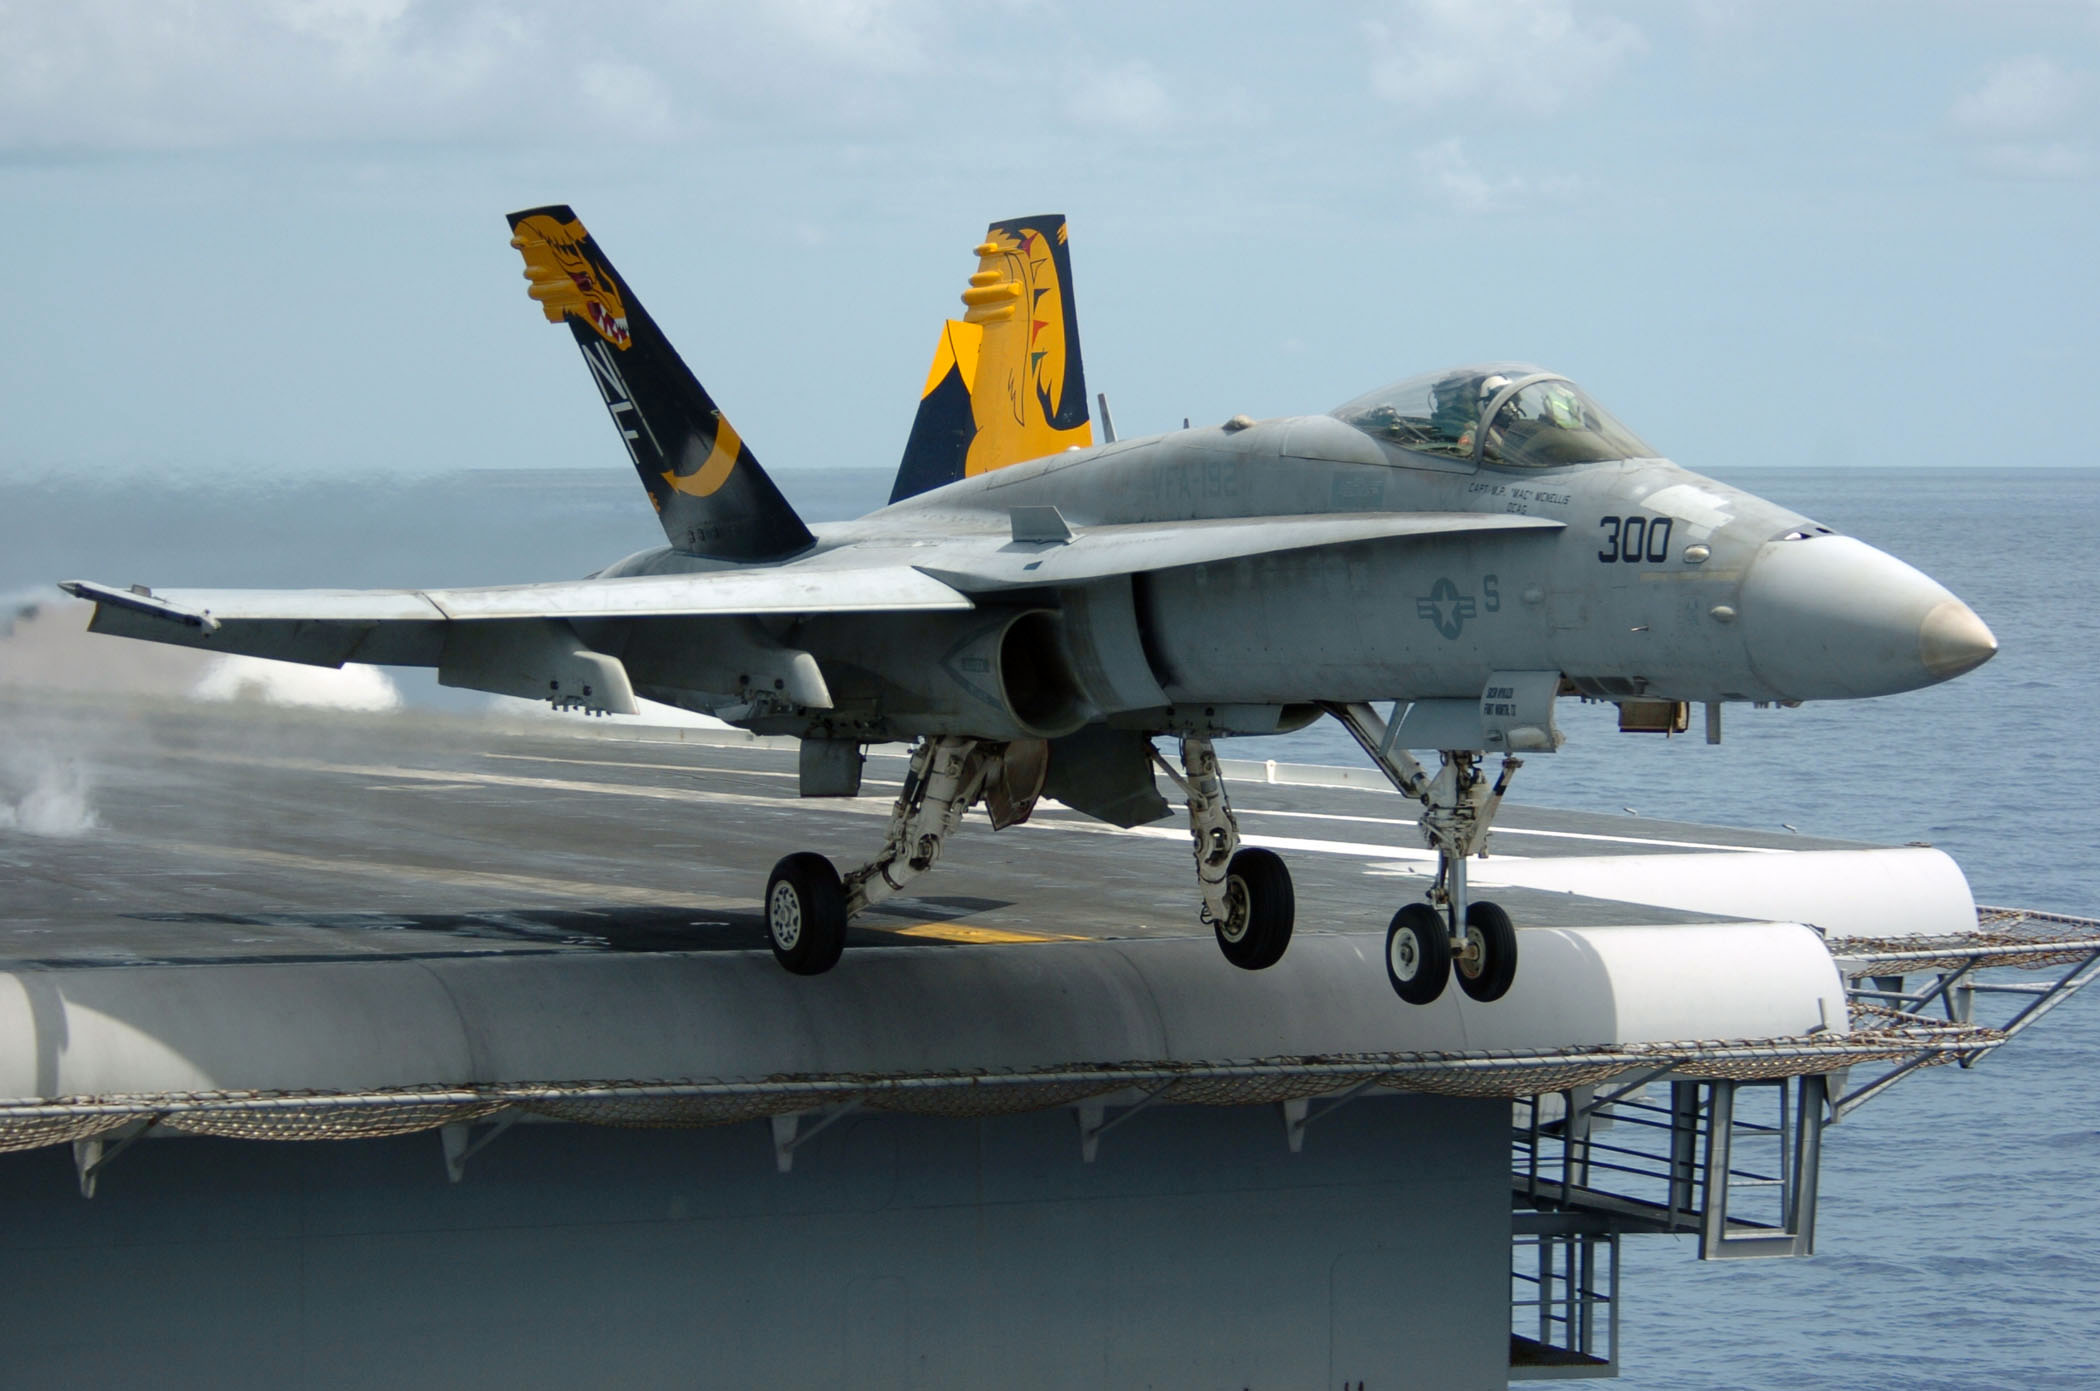 F/A-18 Hornet - F/A-18 Hornet taking off from the USS Kitty Hawk.